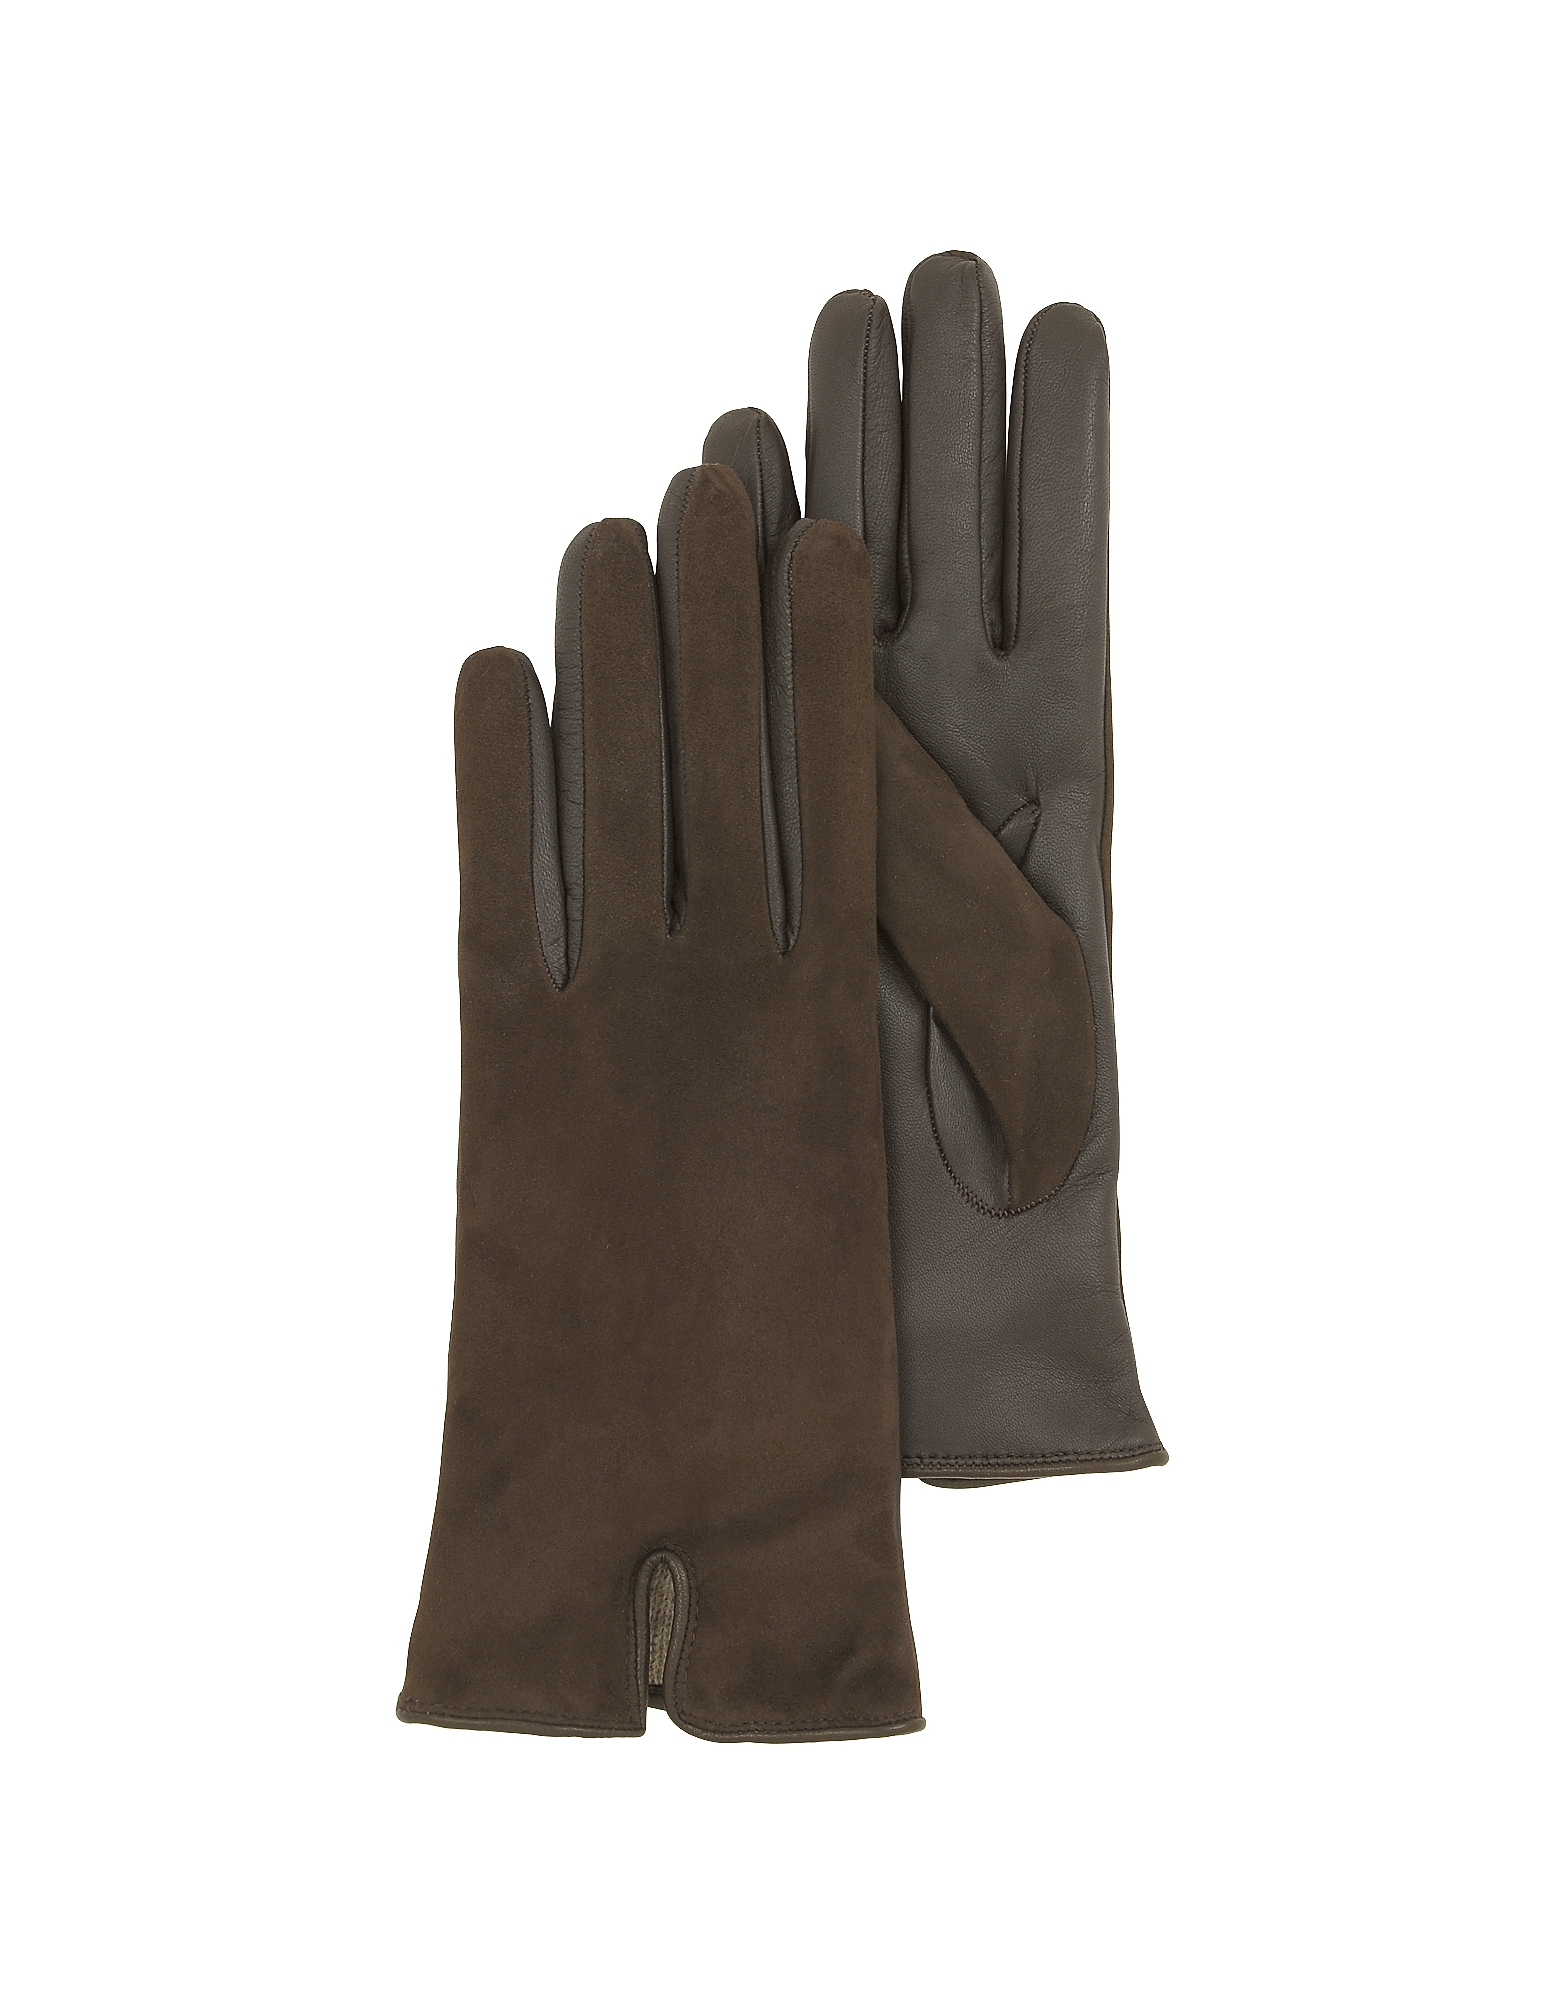 Forzieri Women's Gloves, Brown Touch Screen Leather Women's Gloves